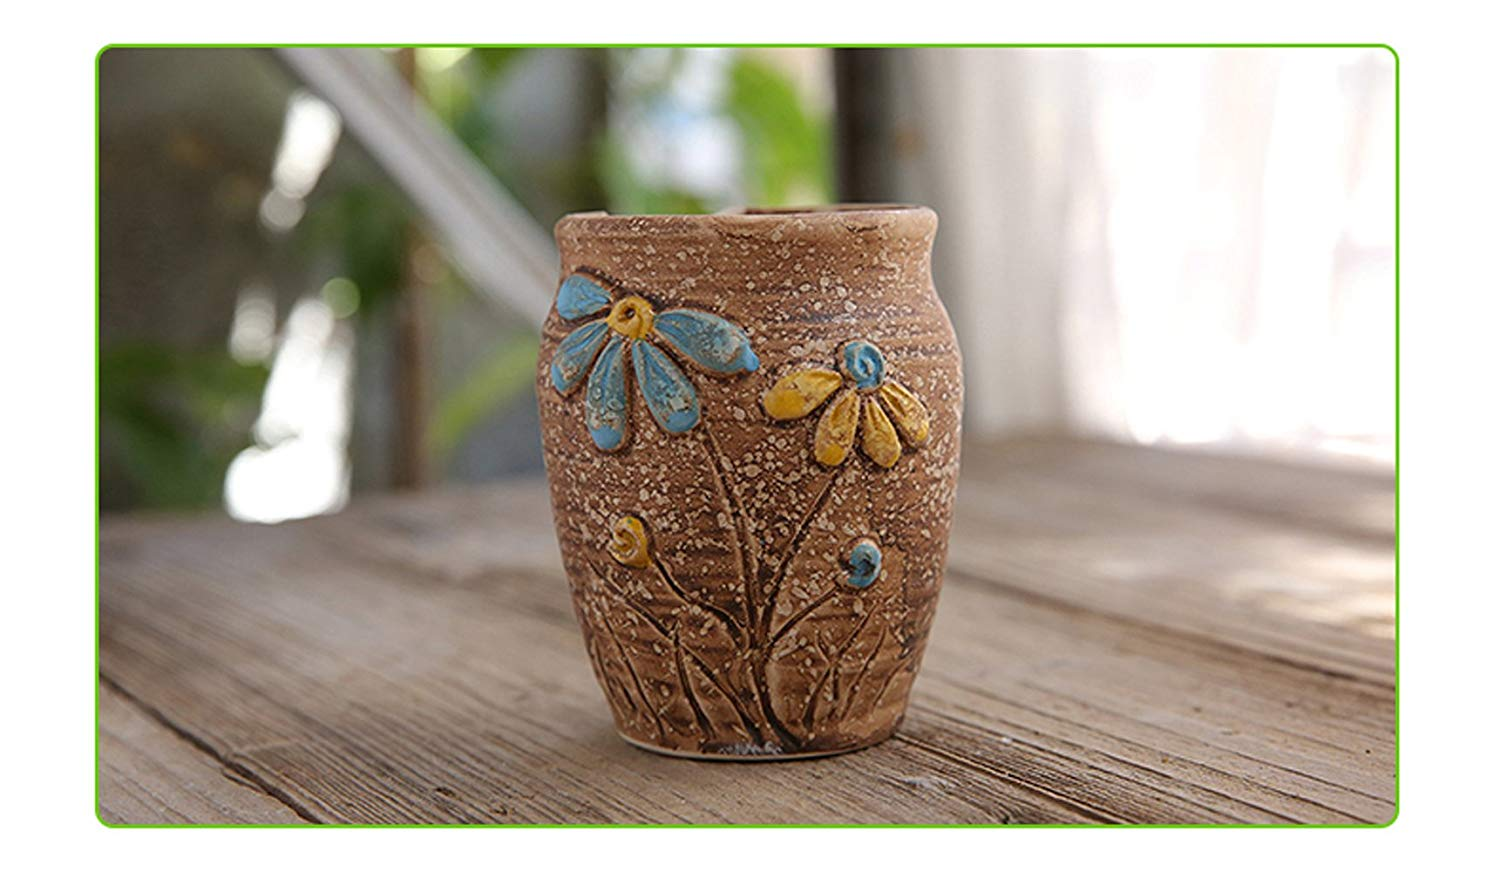 Better-Way Country Rustic Ceramic Sunflower Flower Design Succulent Planter Shabby Chic Cactus Container Decorative Pots Indoor